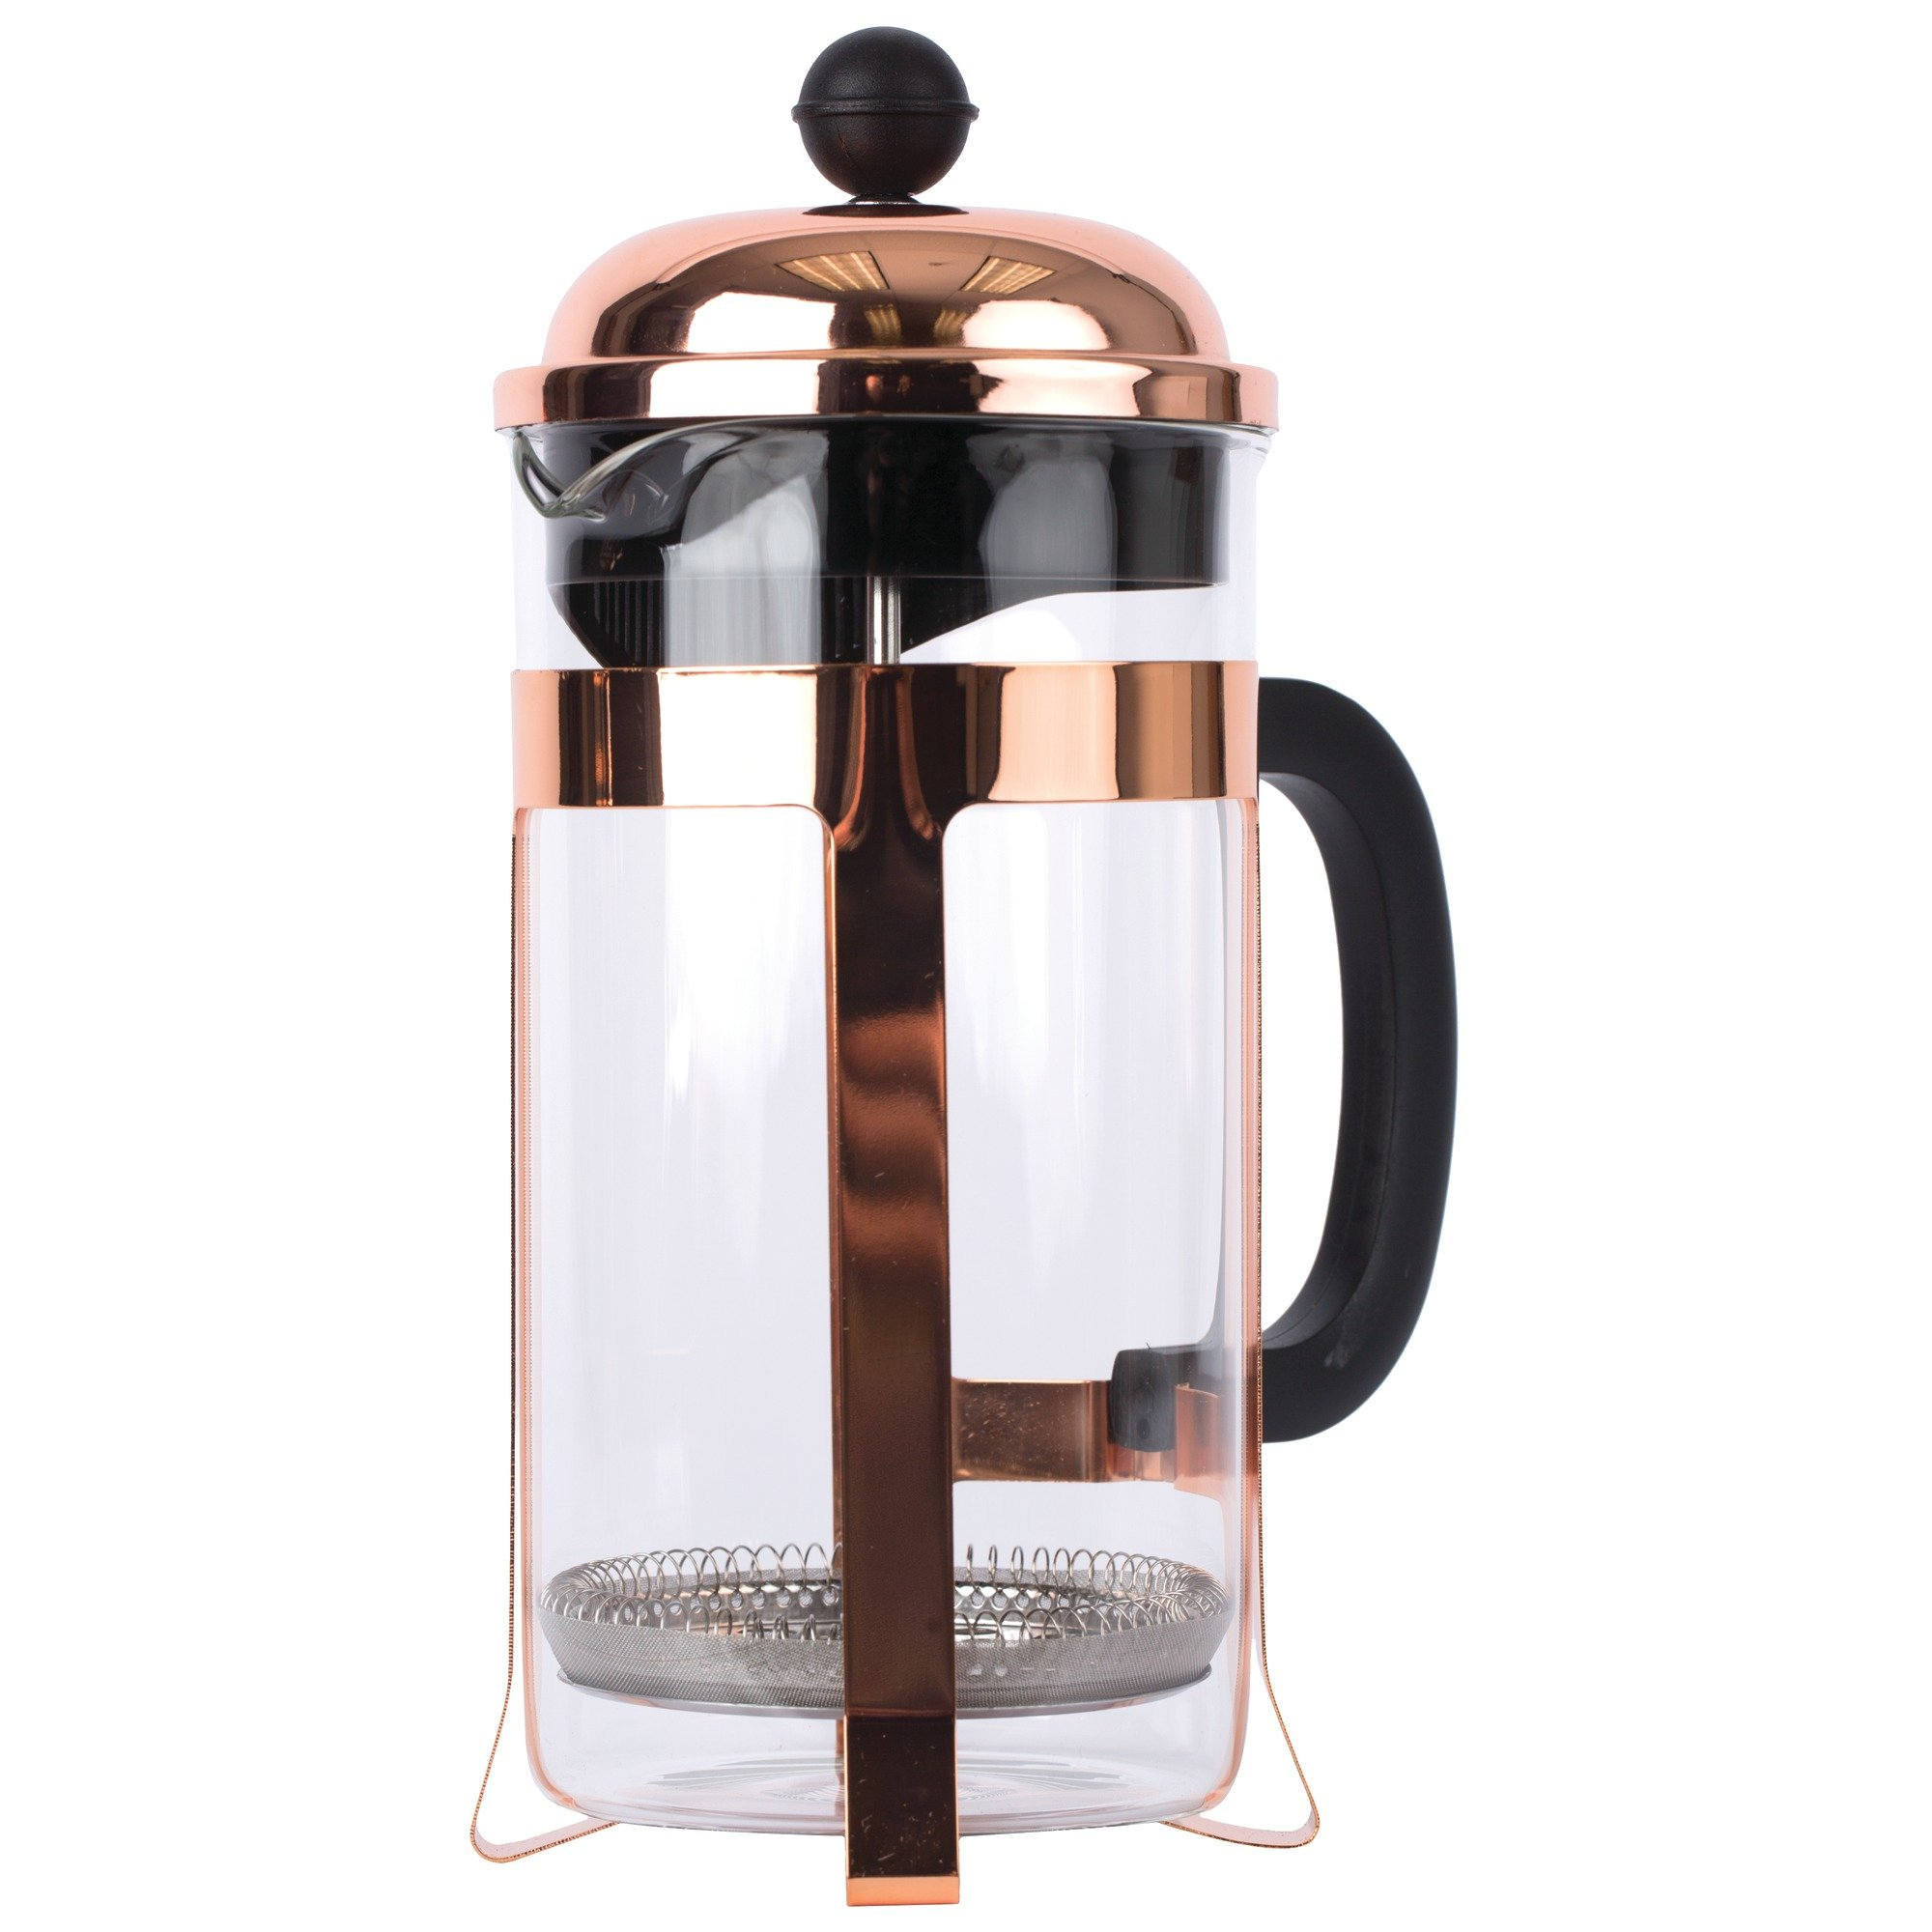 Wyndham House 32 OZ (1000ml) Copper Colored French Press Coffee Maker